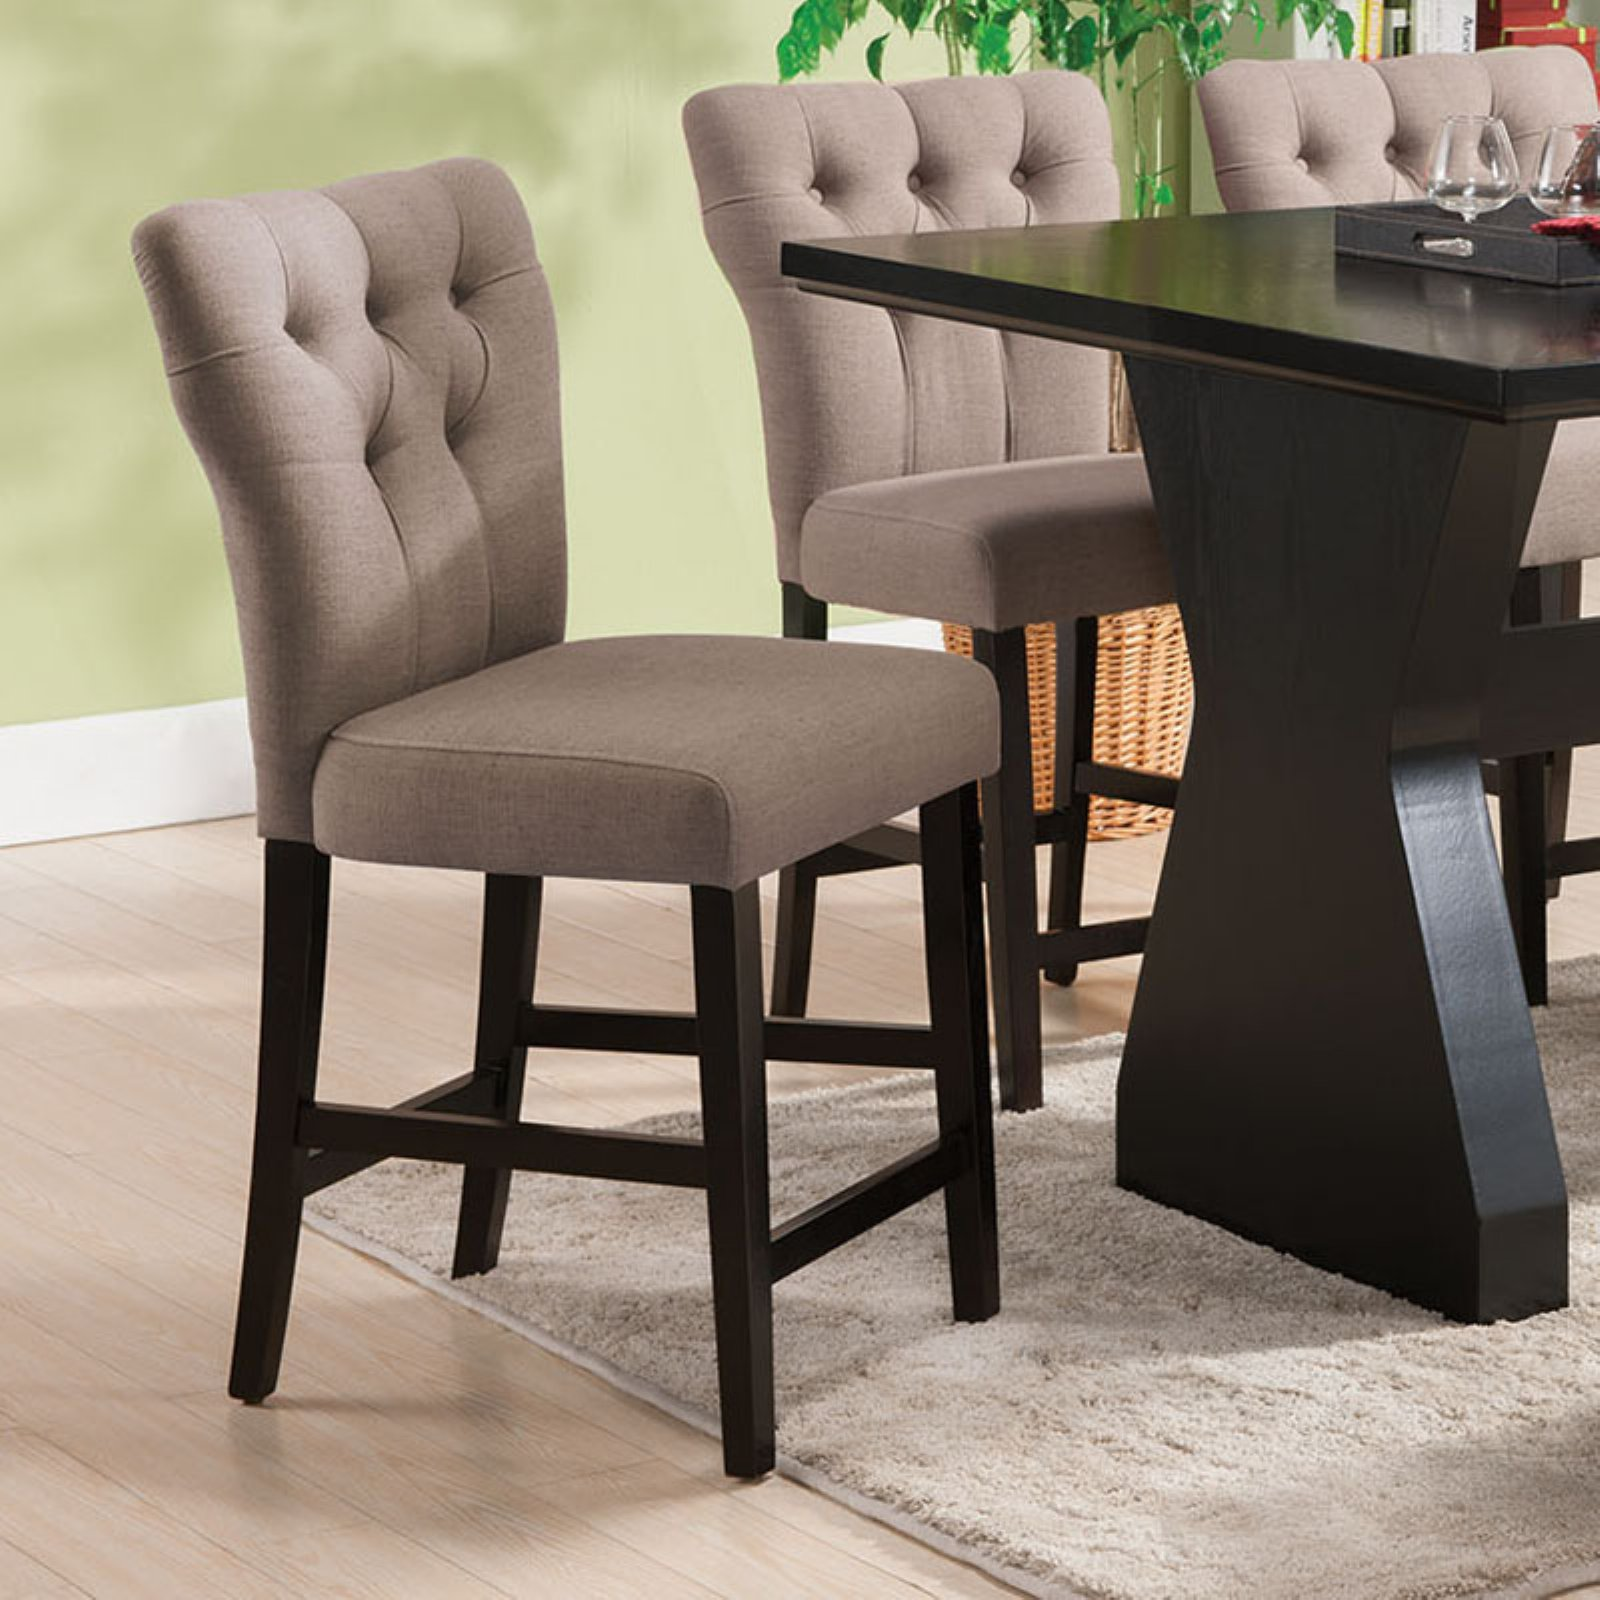 Beau Acme Effie Espresso Counter Height Chair, Set Of 2